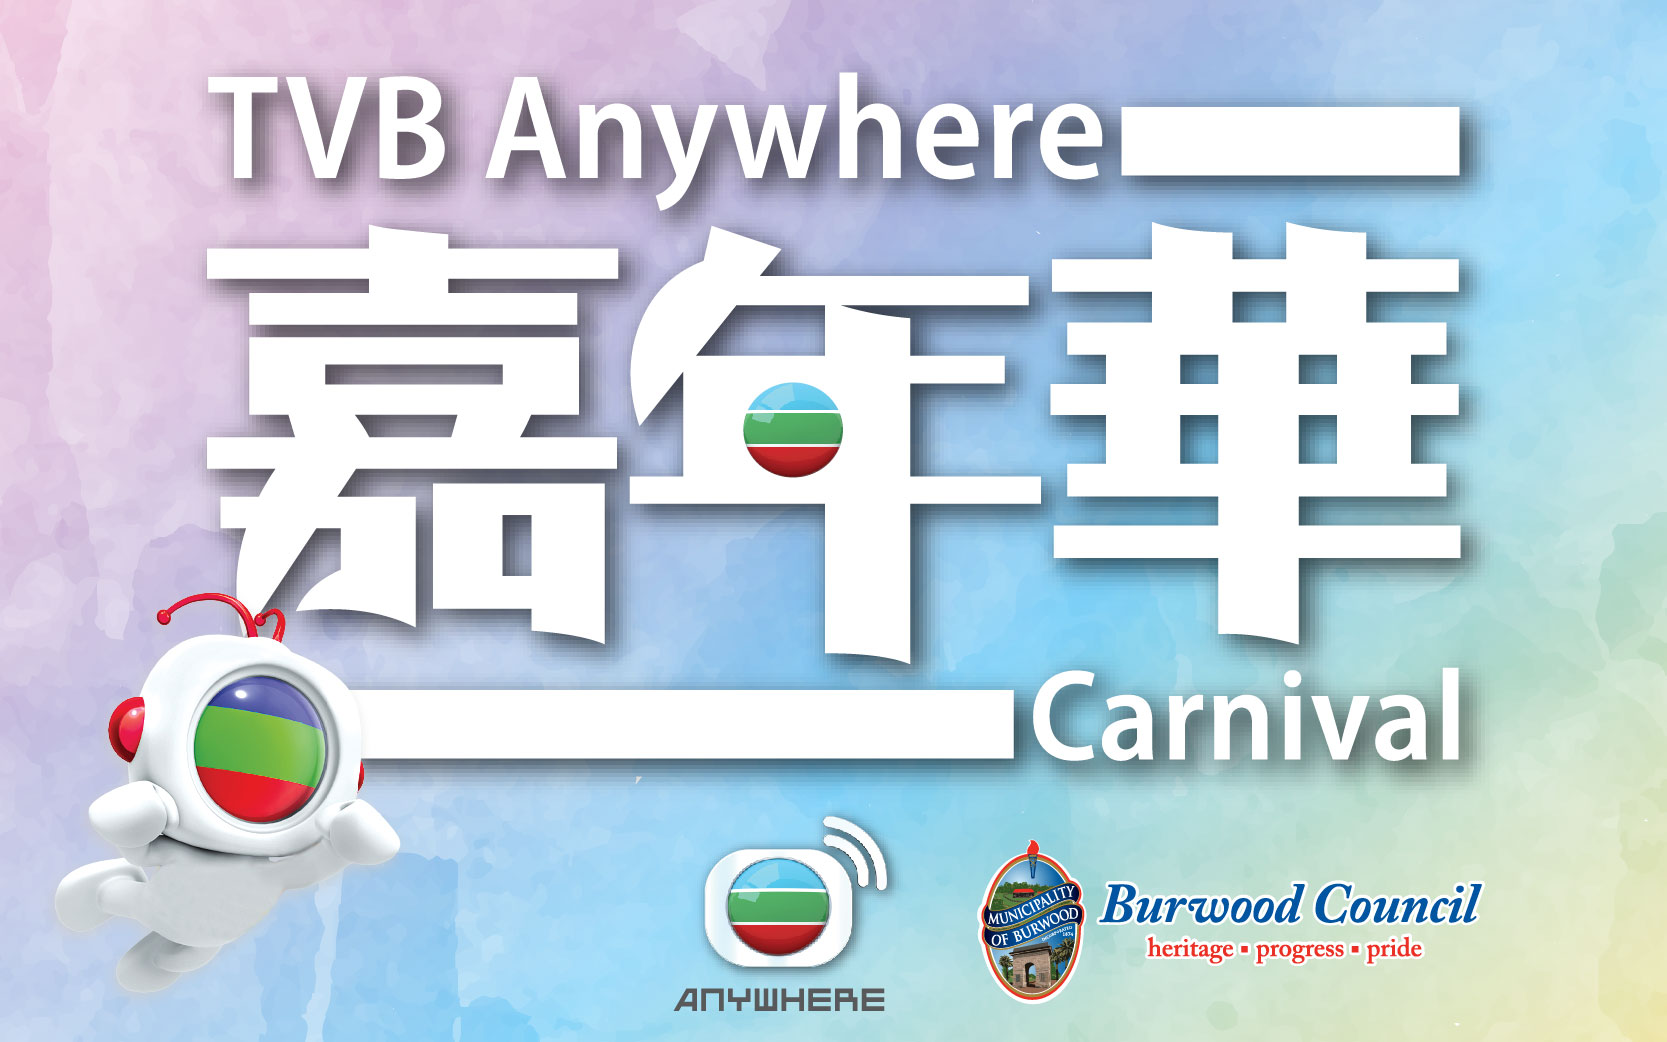 2019 TVB Anywhere 嘉年華